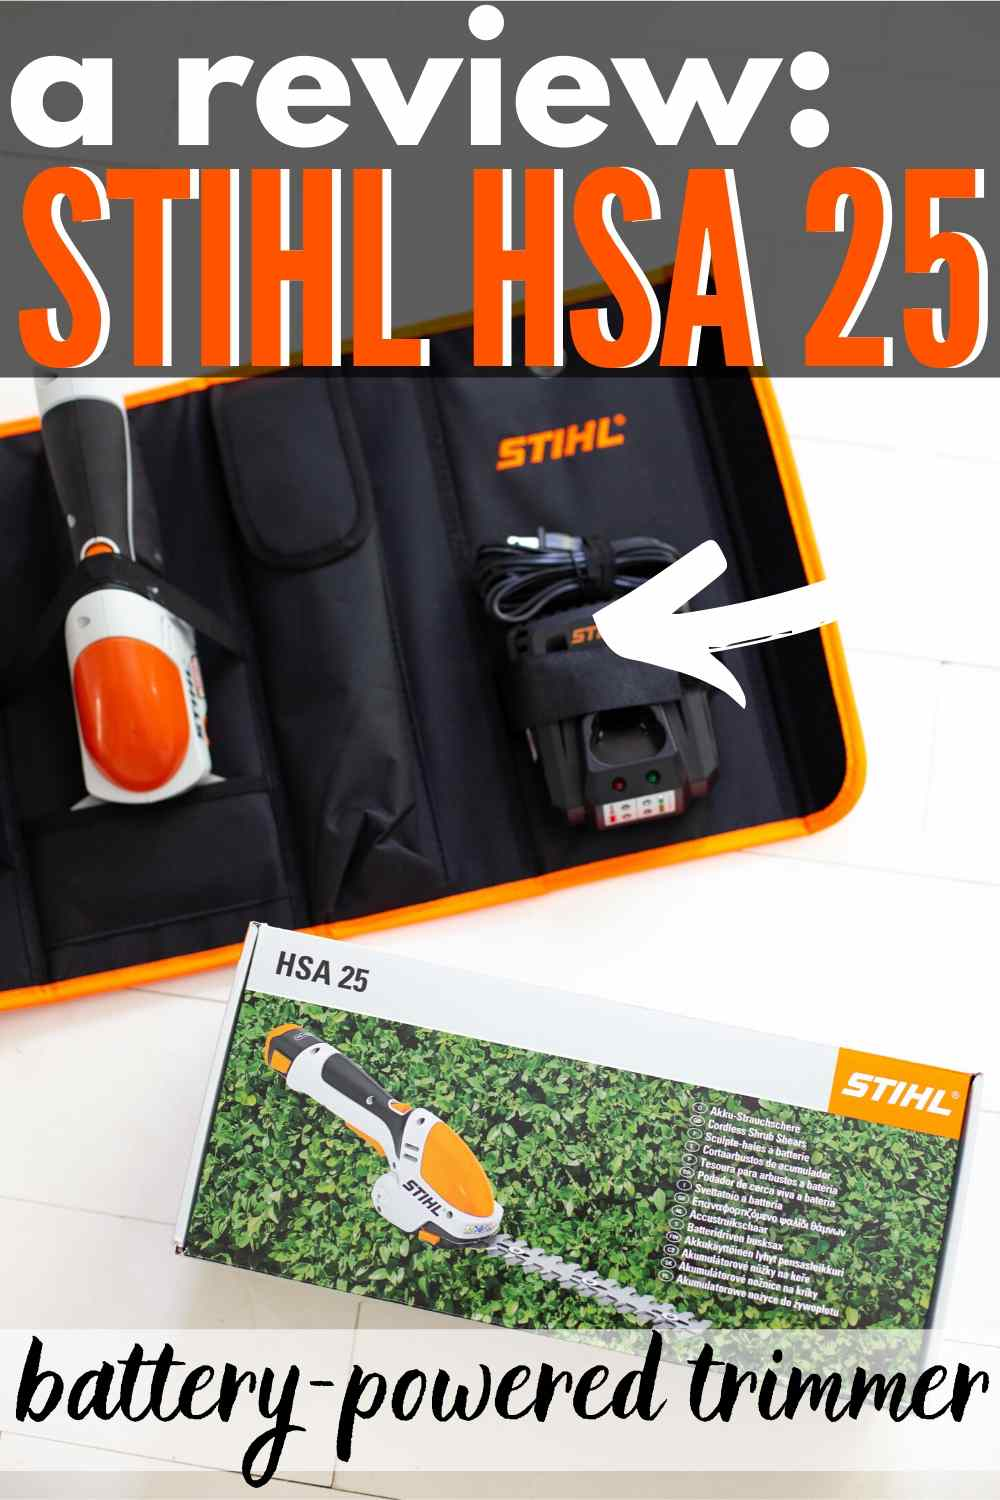 "STIHL HSA 25 in box on white floor - text ""a review stihl hsa 25 battery powered pruner"""